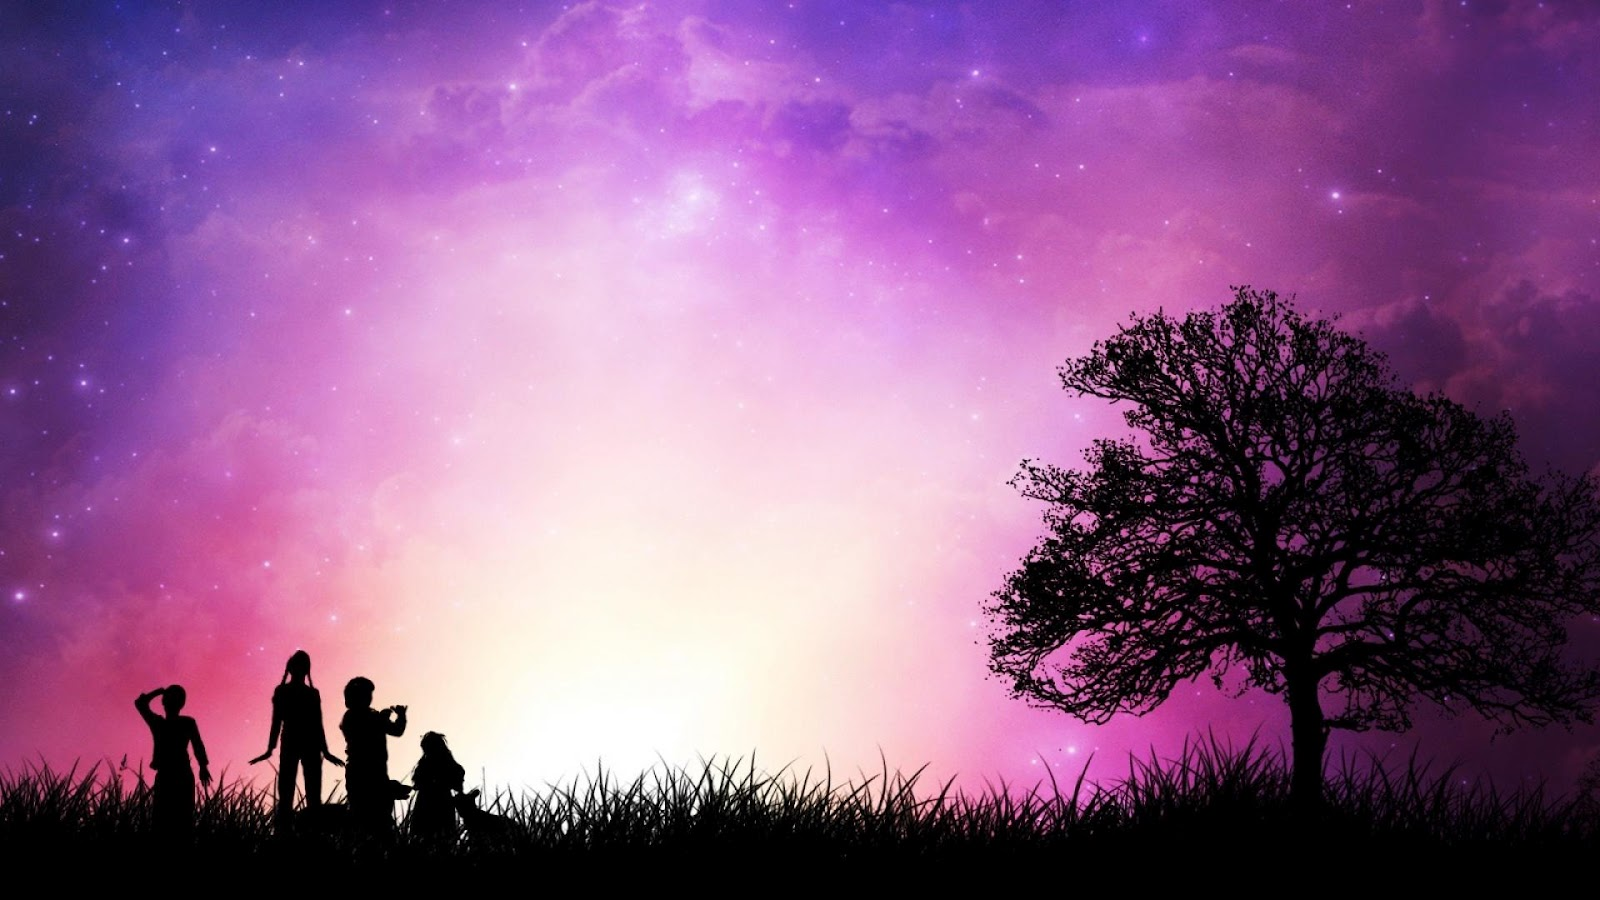 Romantic Love Wallpapers For Pc : Romantic Wallpapers HD Pictures HD Wallpapers ...